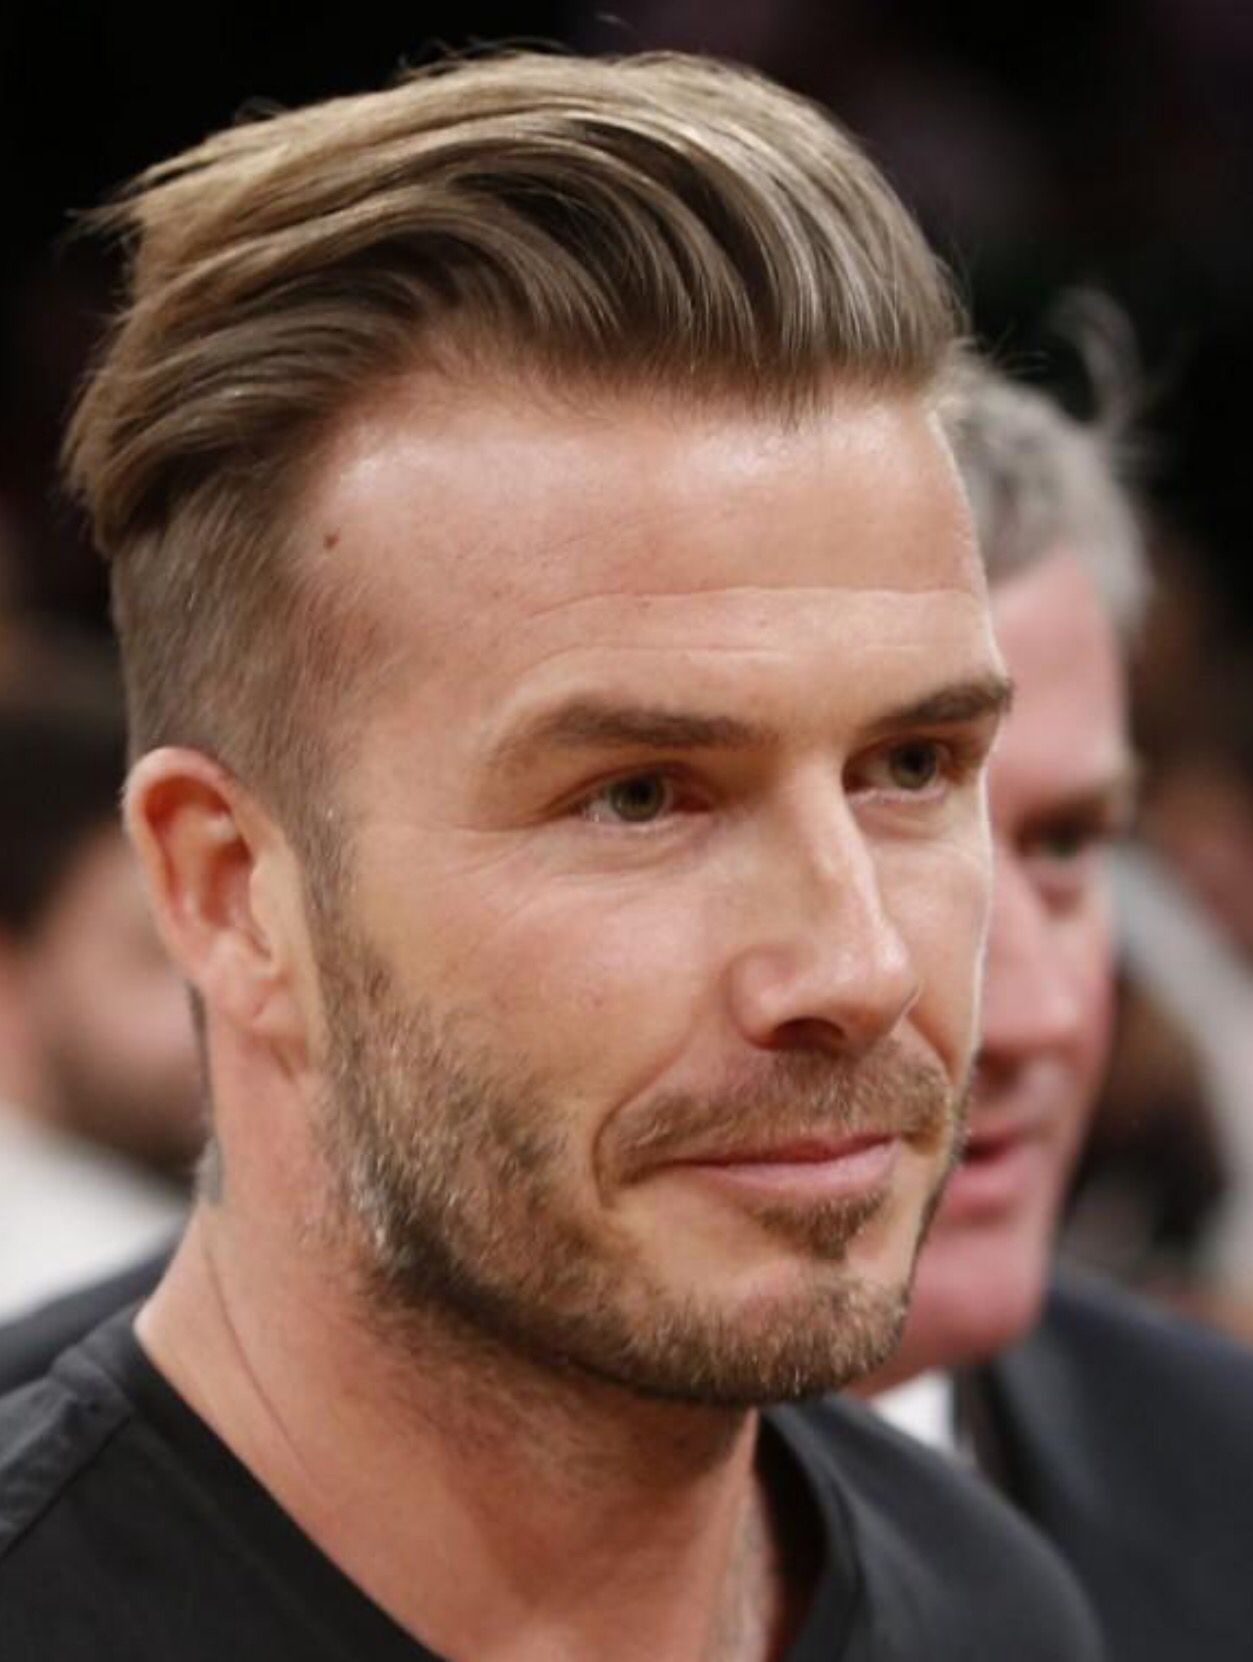 Undercut Comb Over In 2019 Beckham Haircut David Beckham